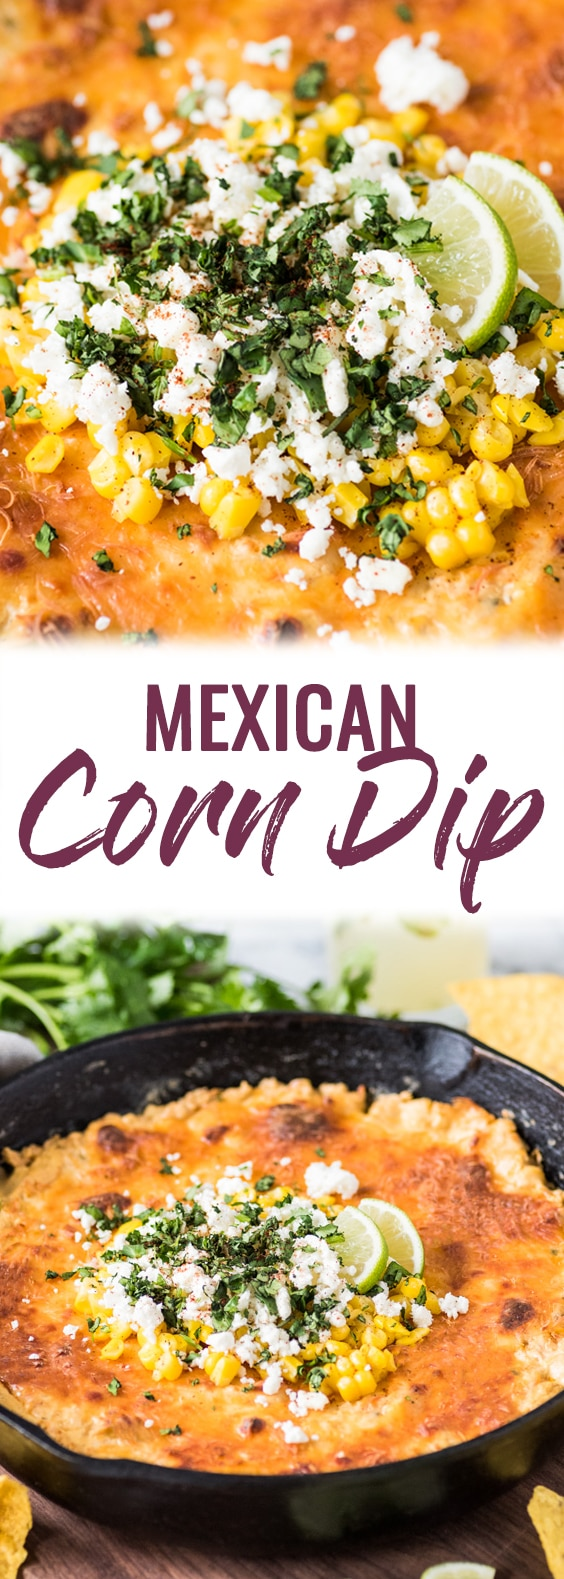 Photo of Mexican Corn Dip